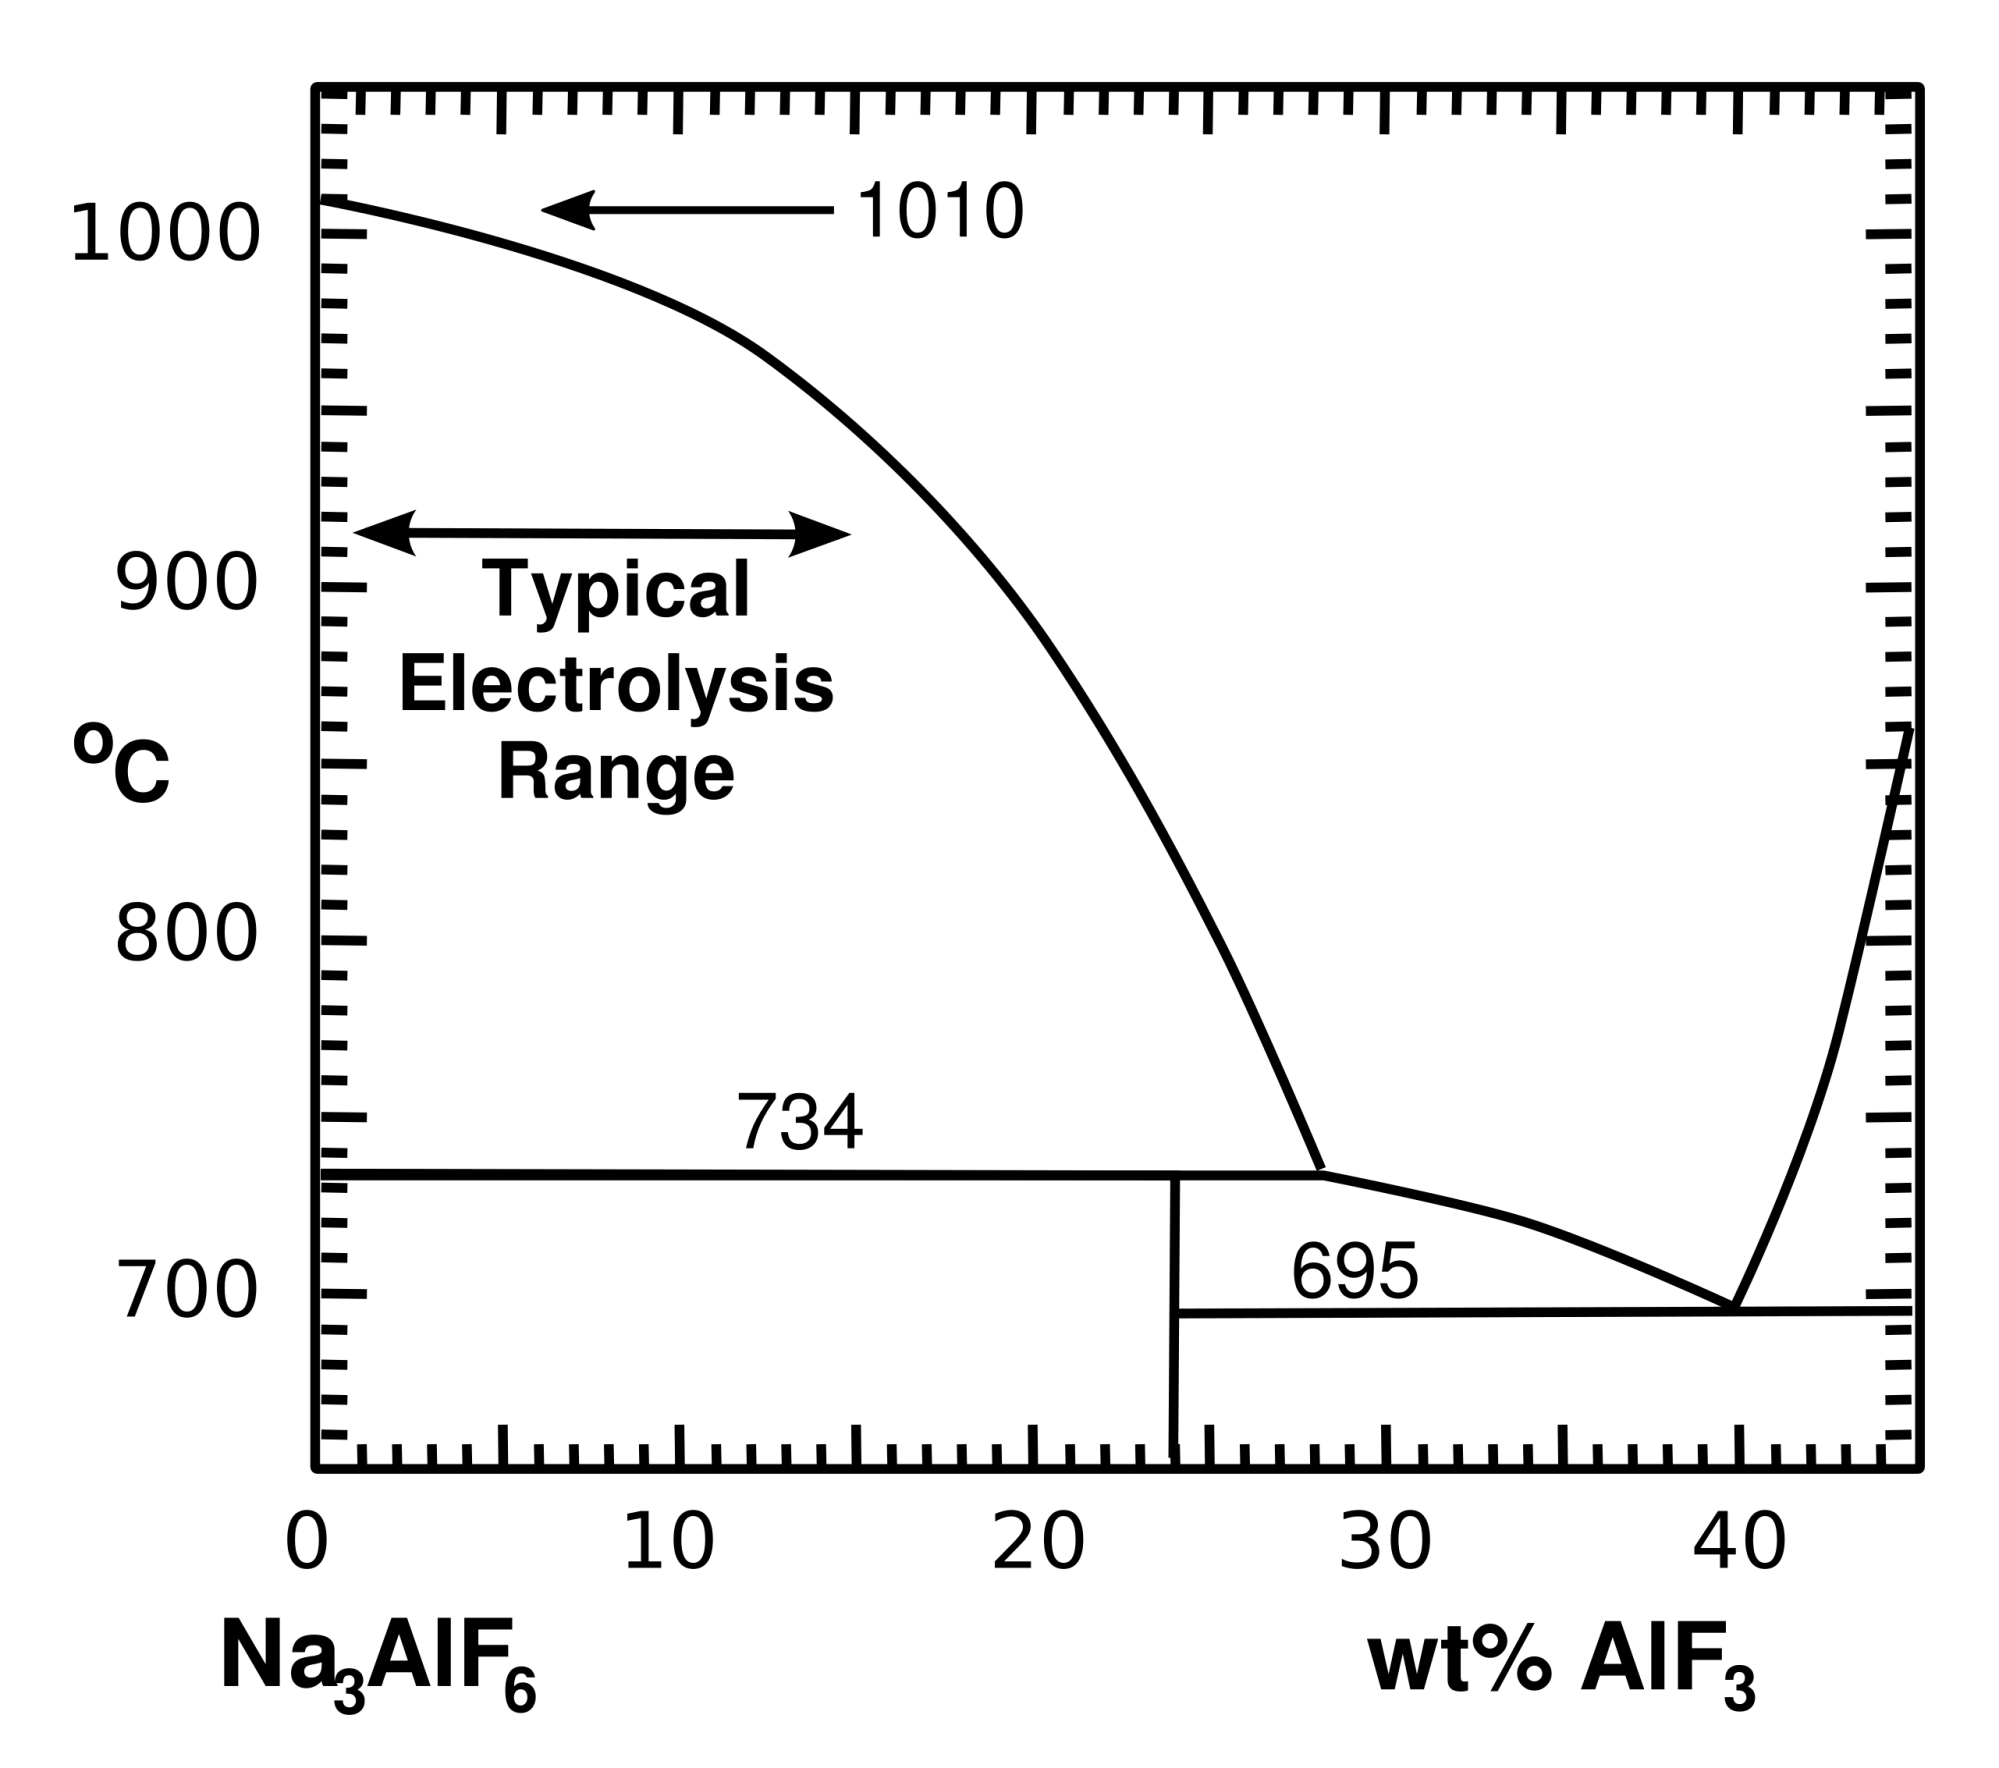 hight resolution of portion of the cryolite aluminum fluoride phase diagram